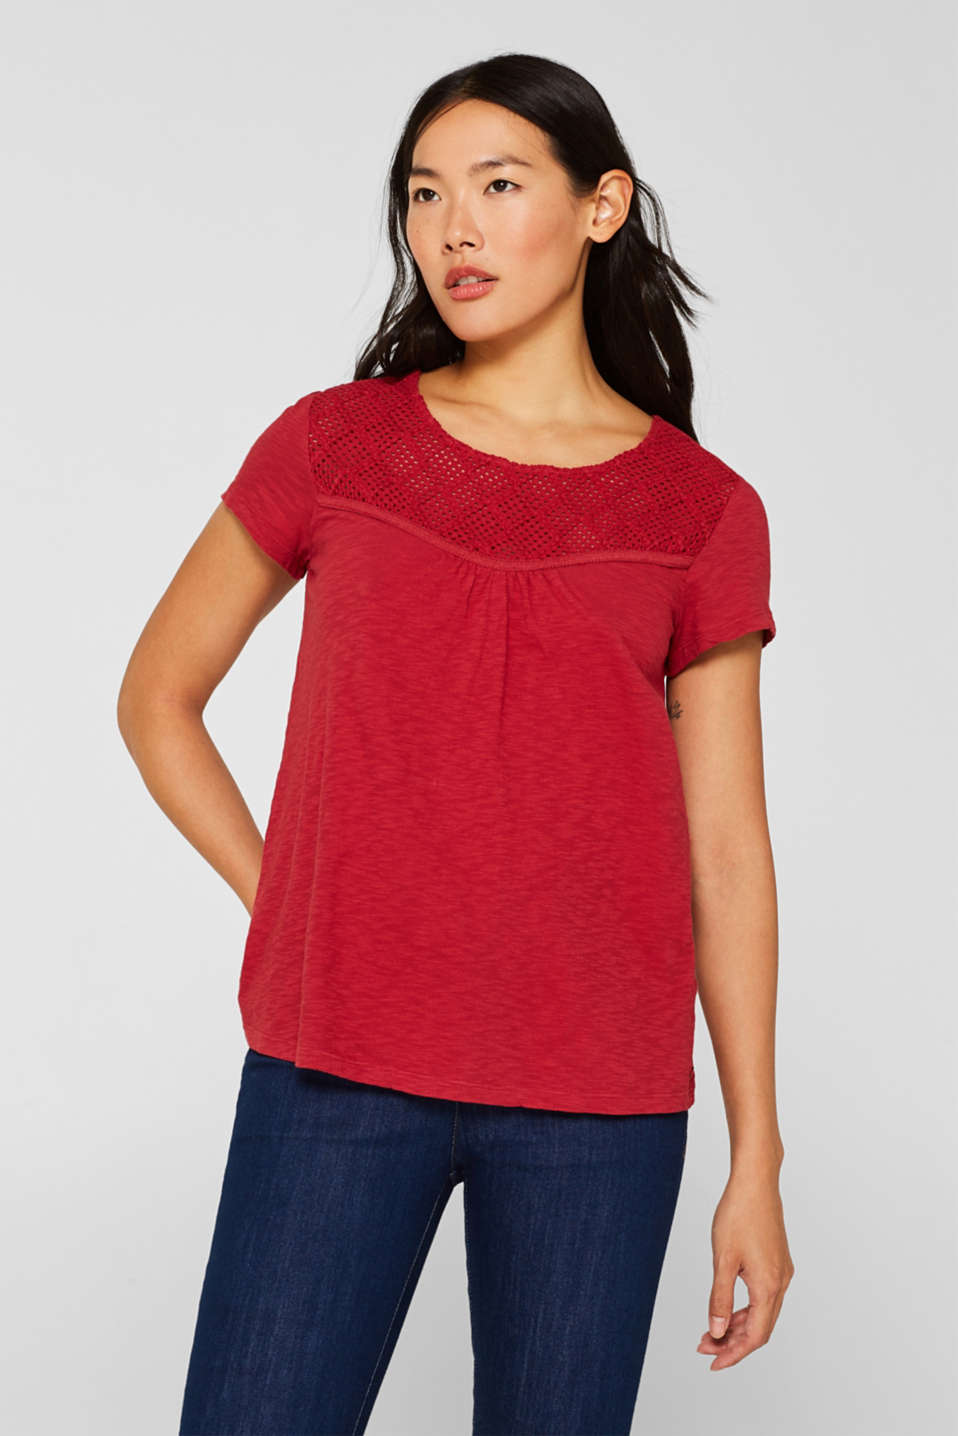 Esprit - Slub top with crocheted lace, 100% cotton